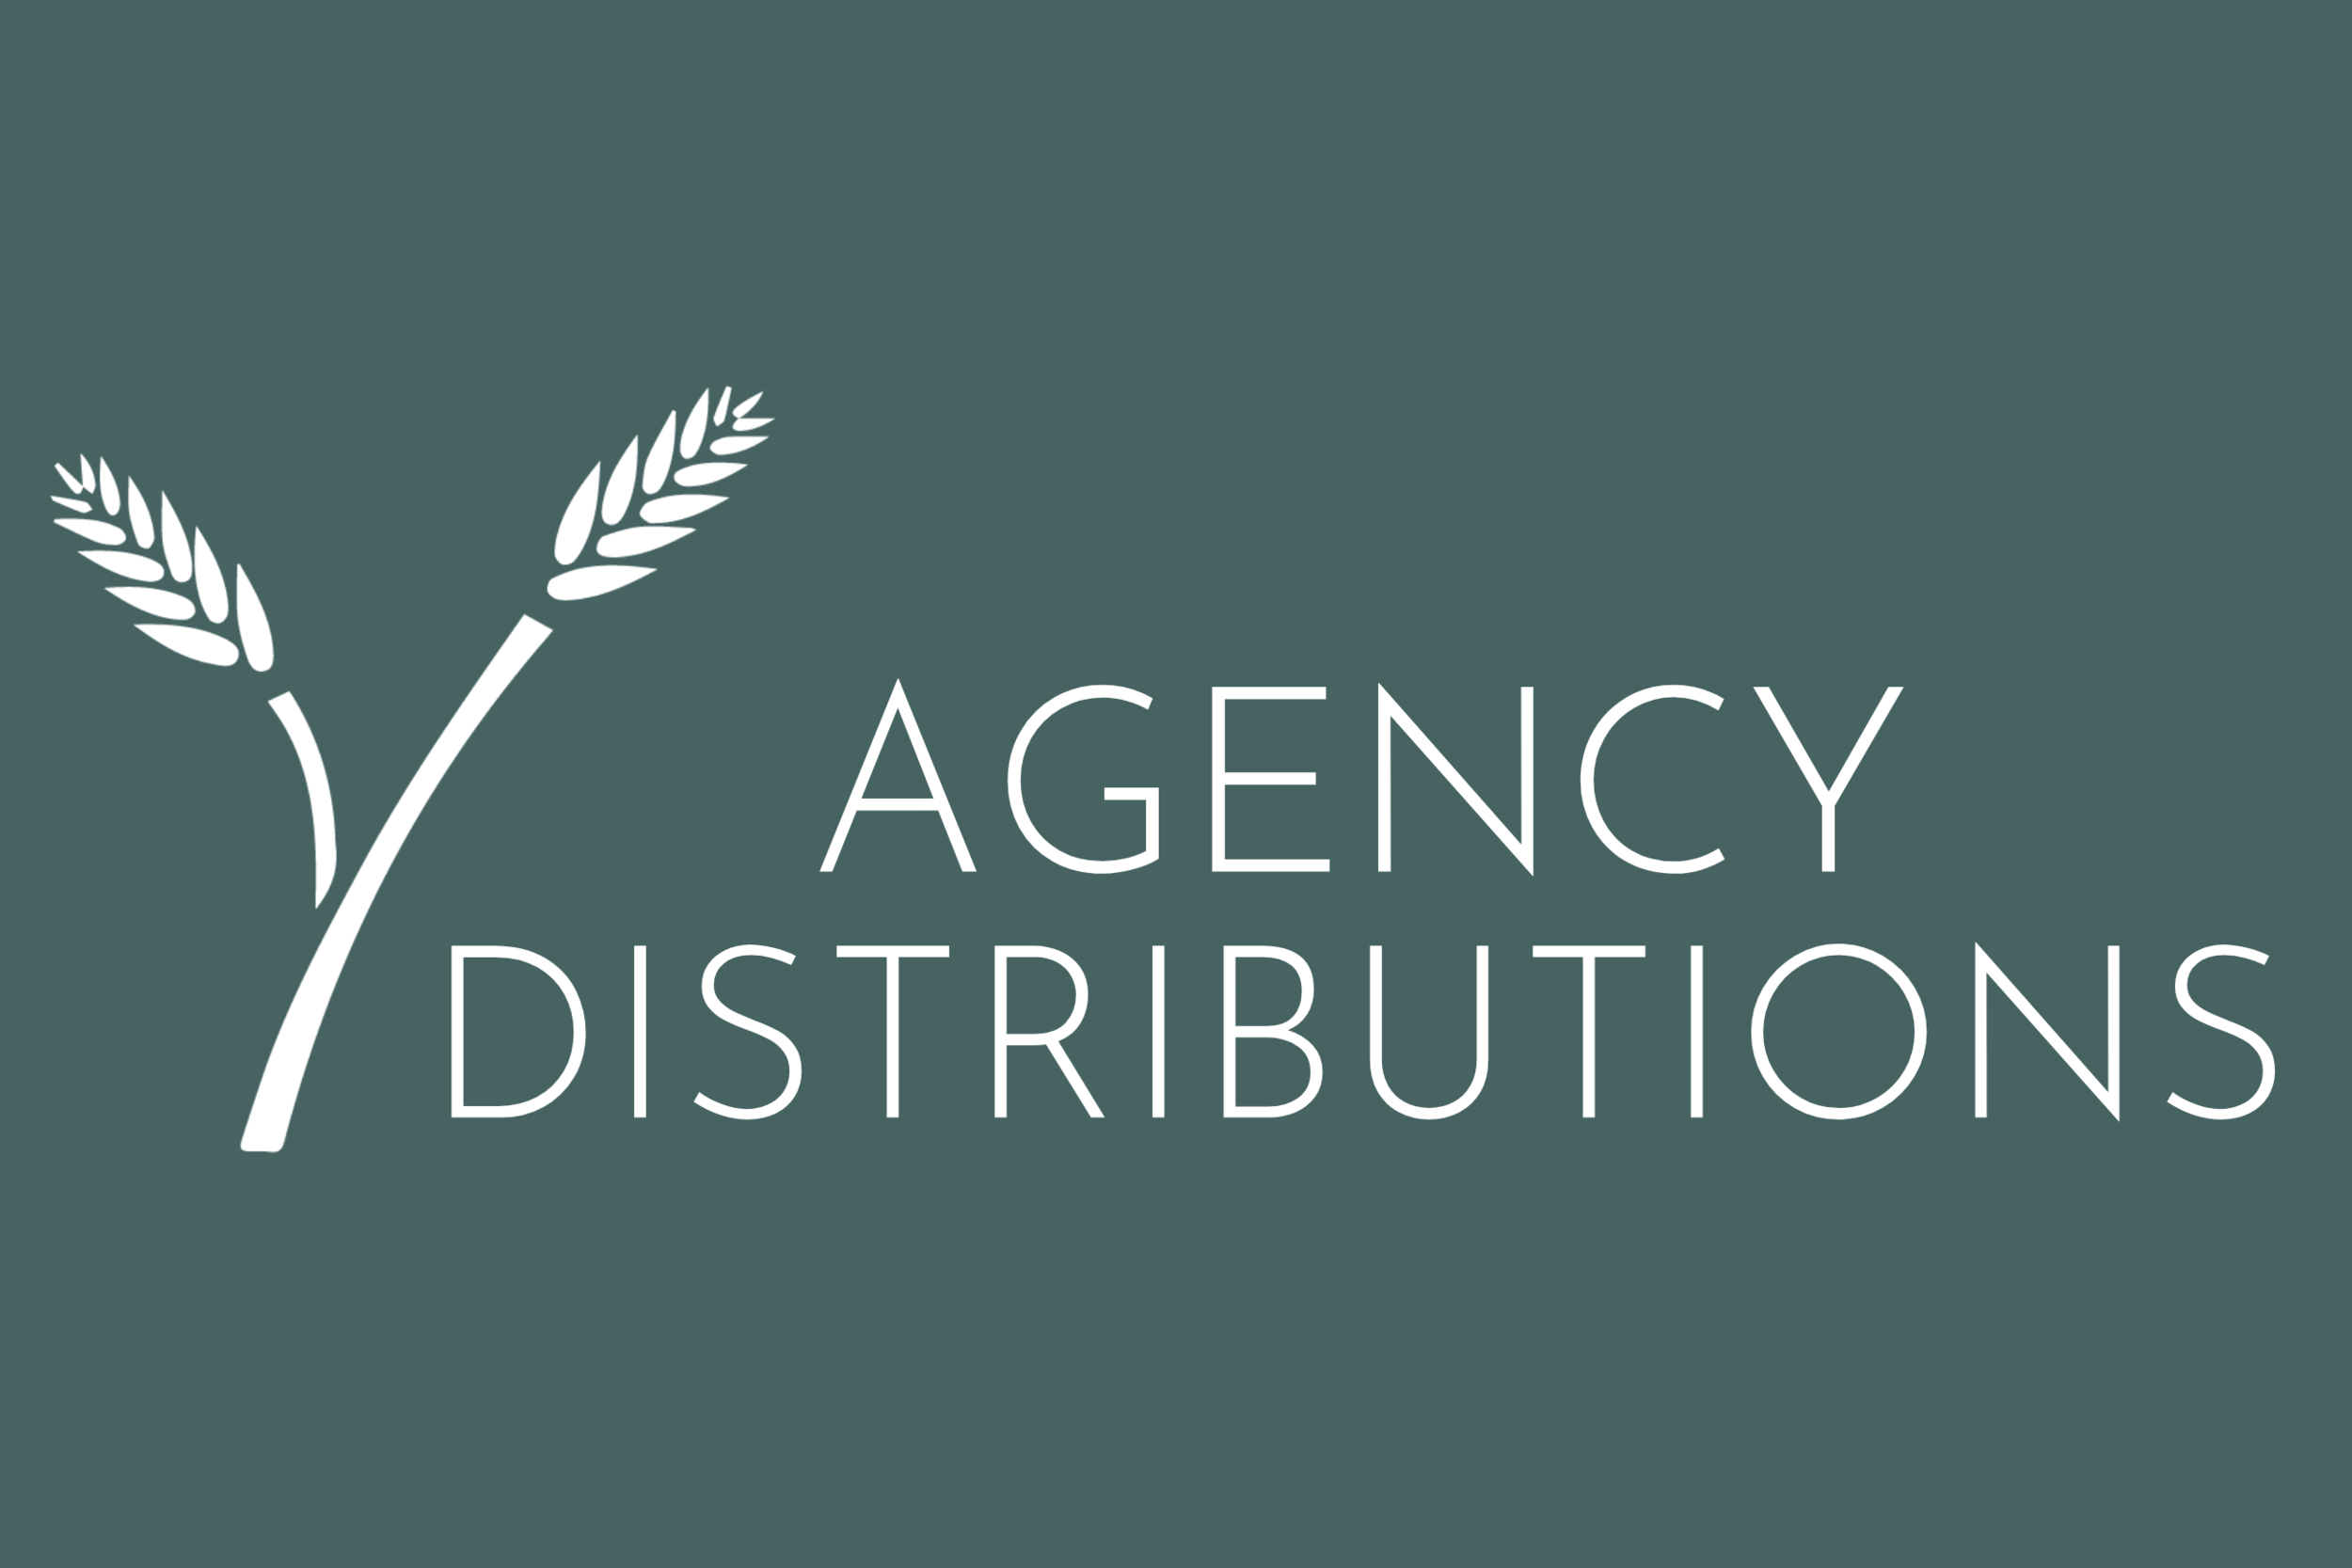 Agency Distributions